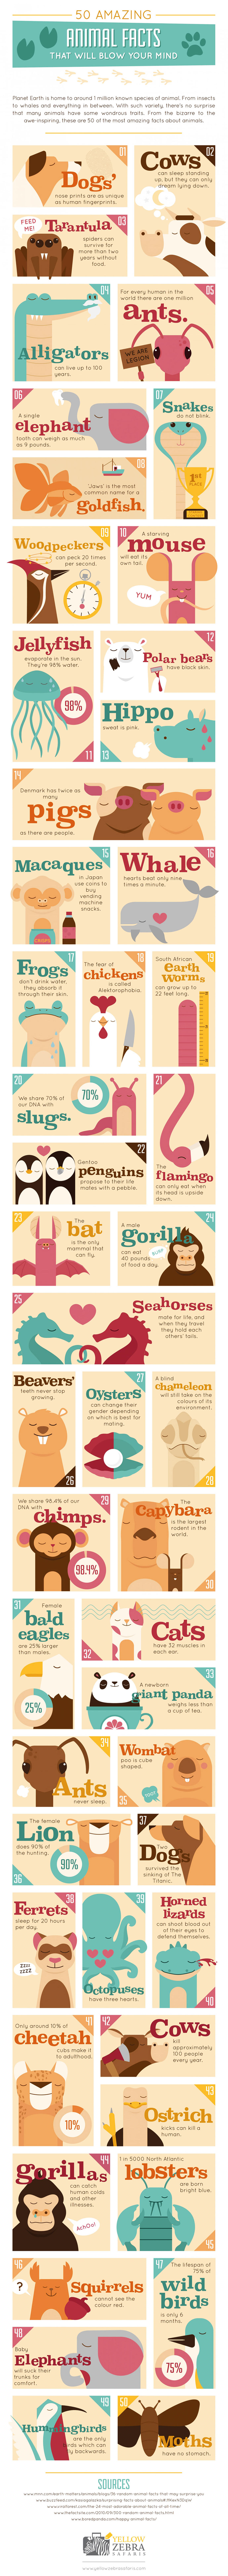 50 Interesting Animal Facts Infographic